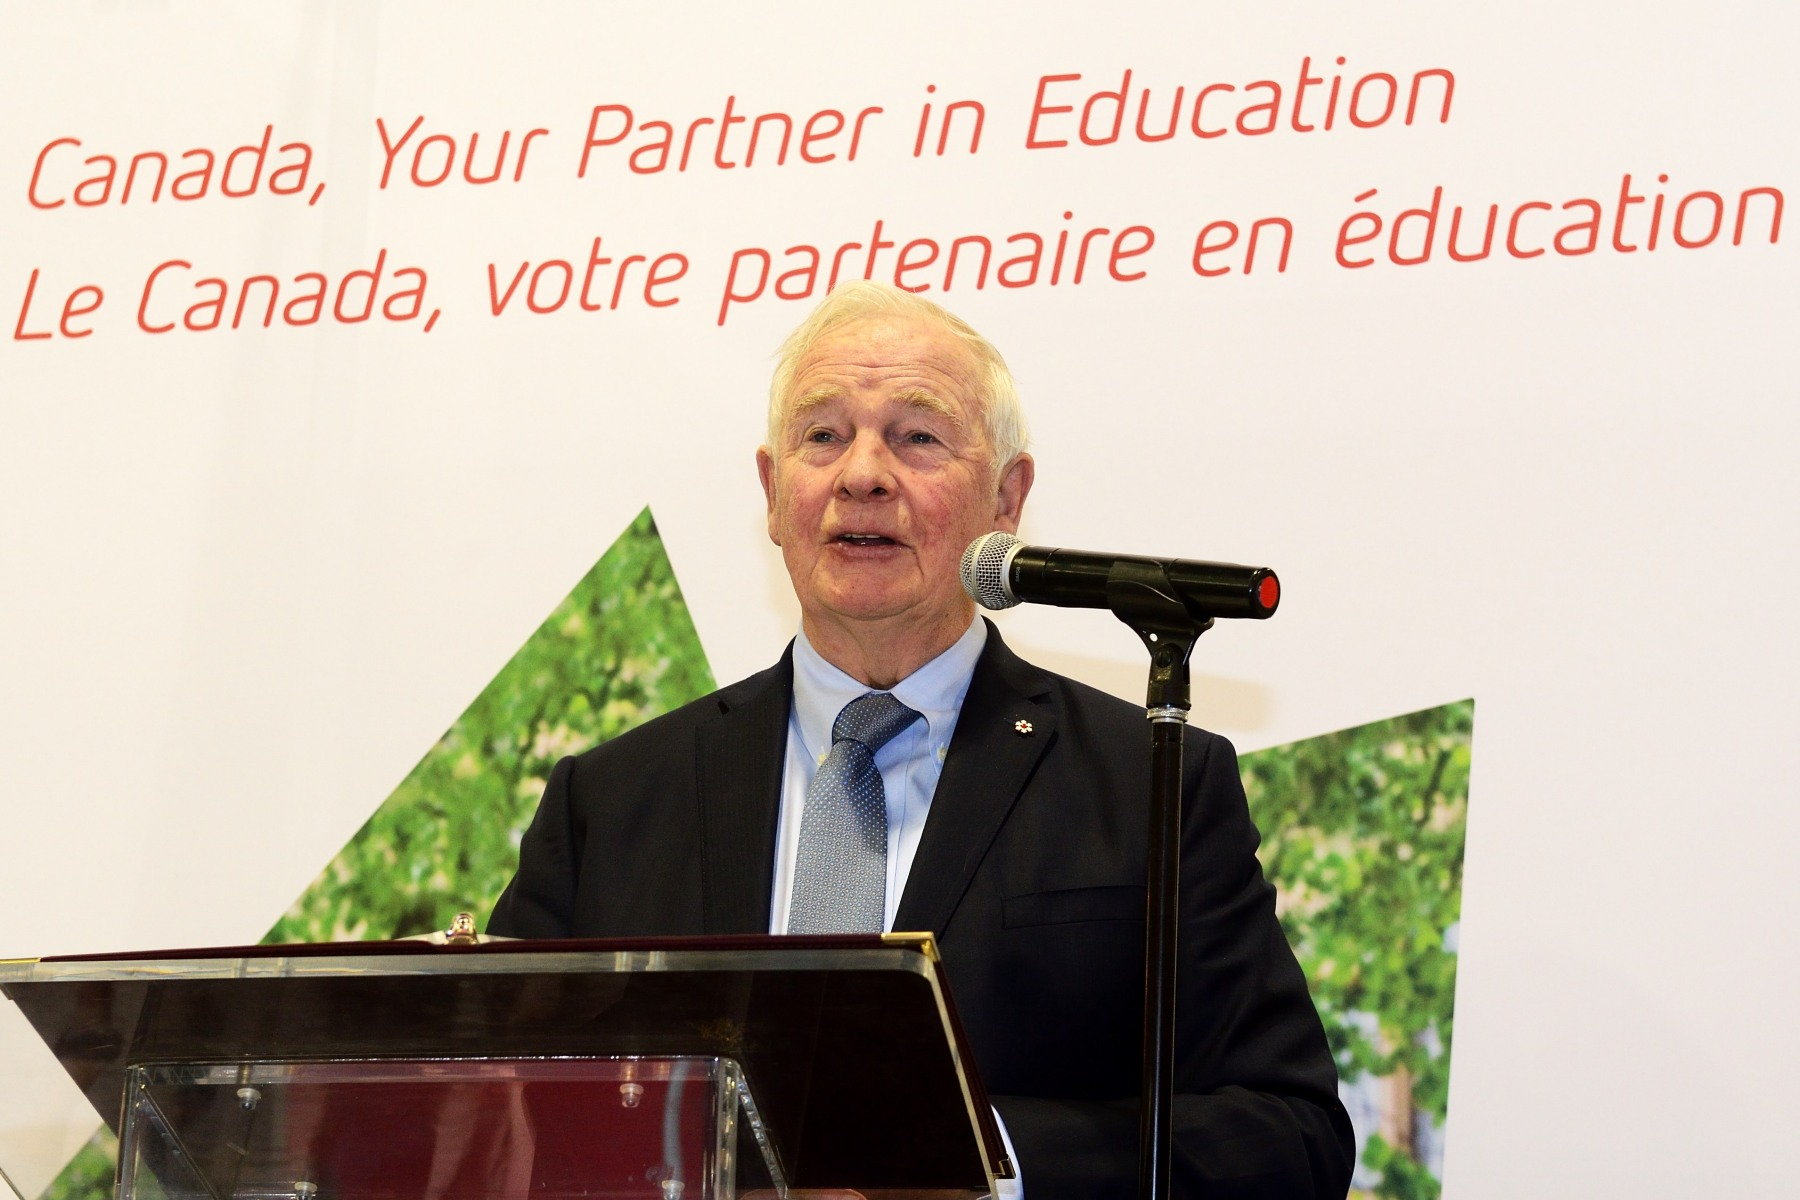 For the inauguration of the Canada Pavilion, he delivered remarks. The Pavilion acts as a window on Canadian education and a meeting space for Canadian representatives from all provinces.